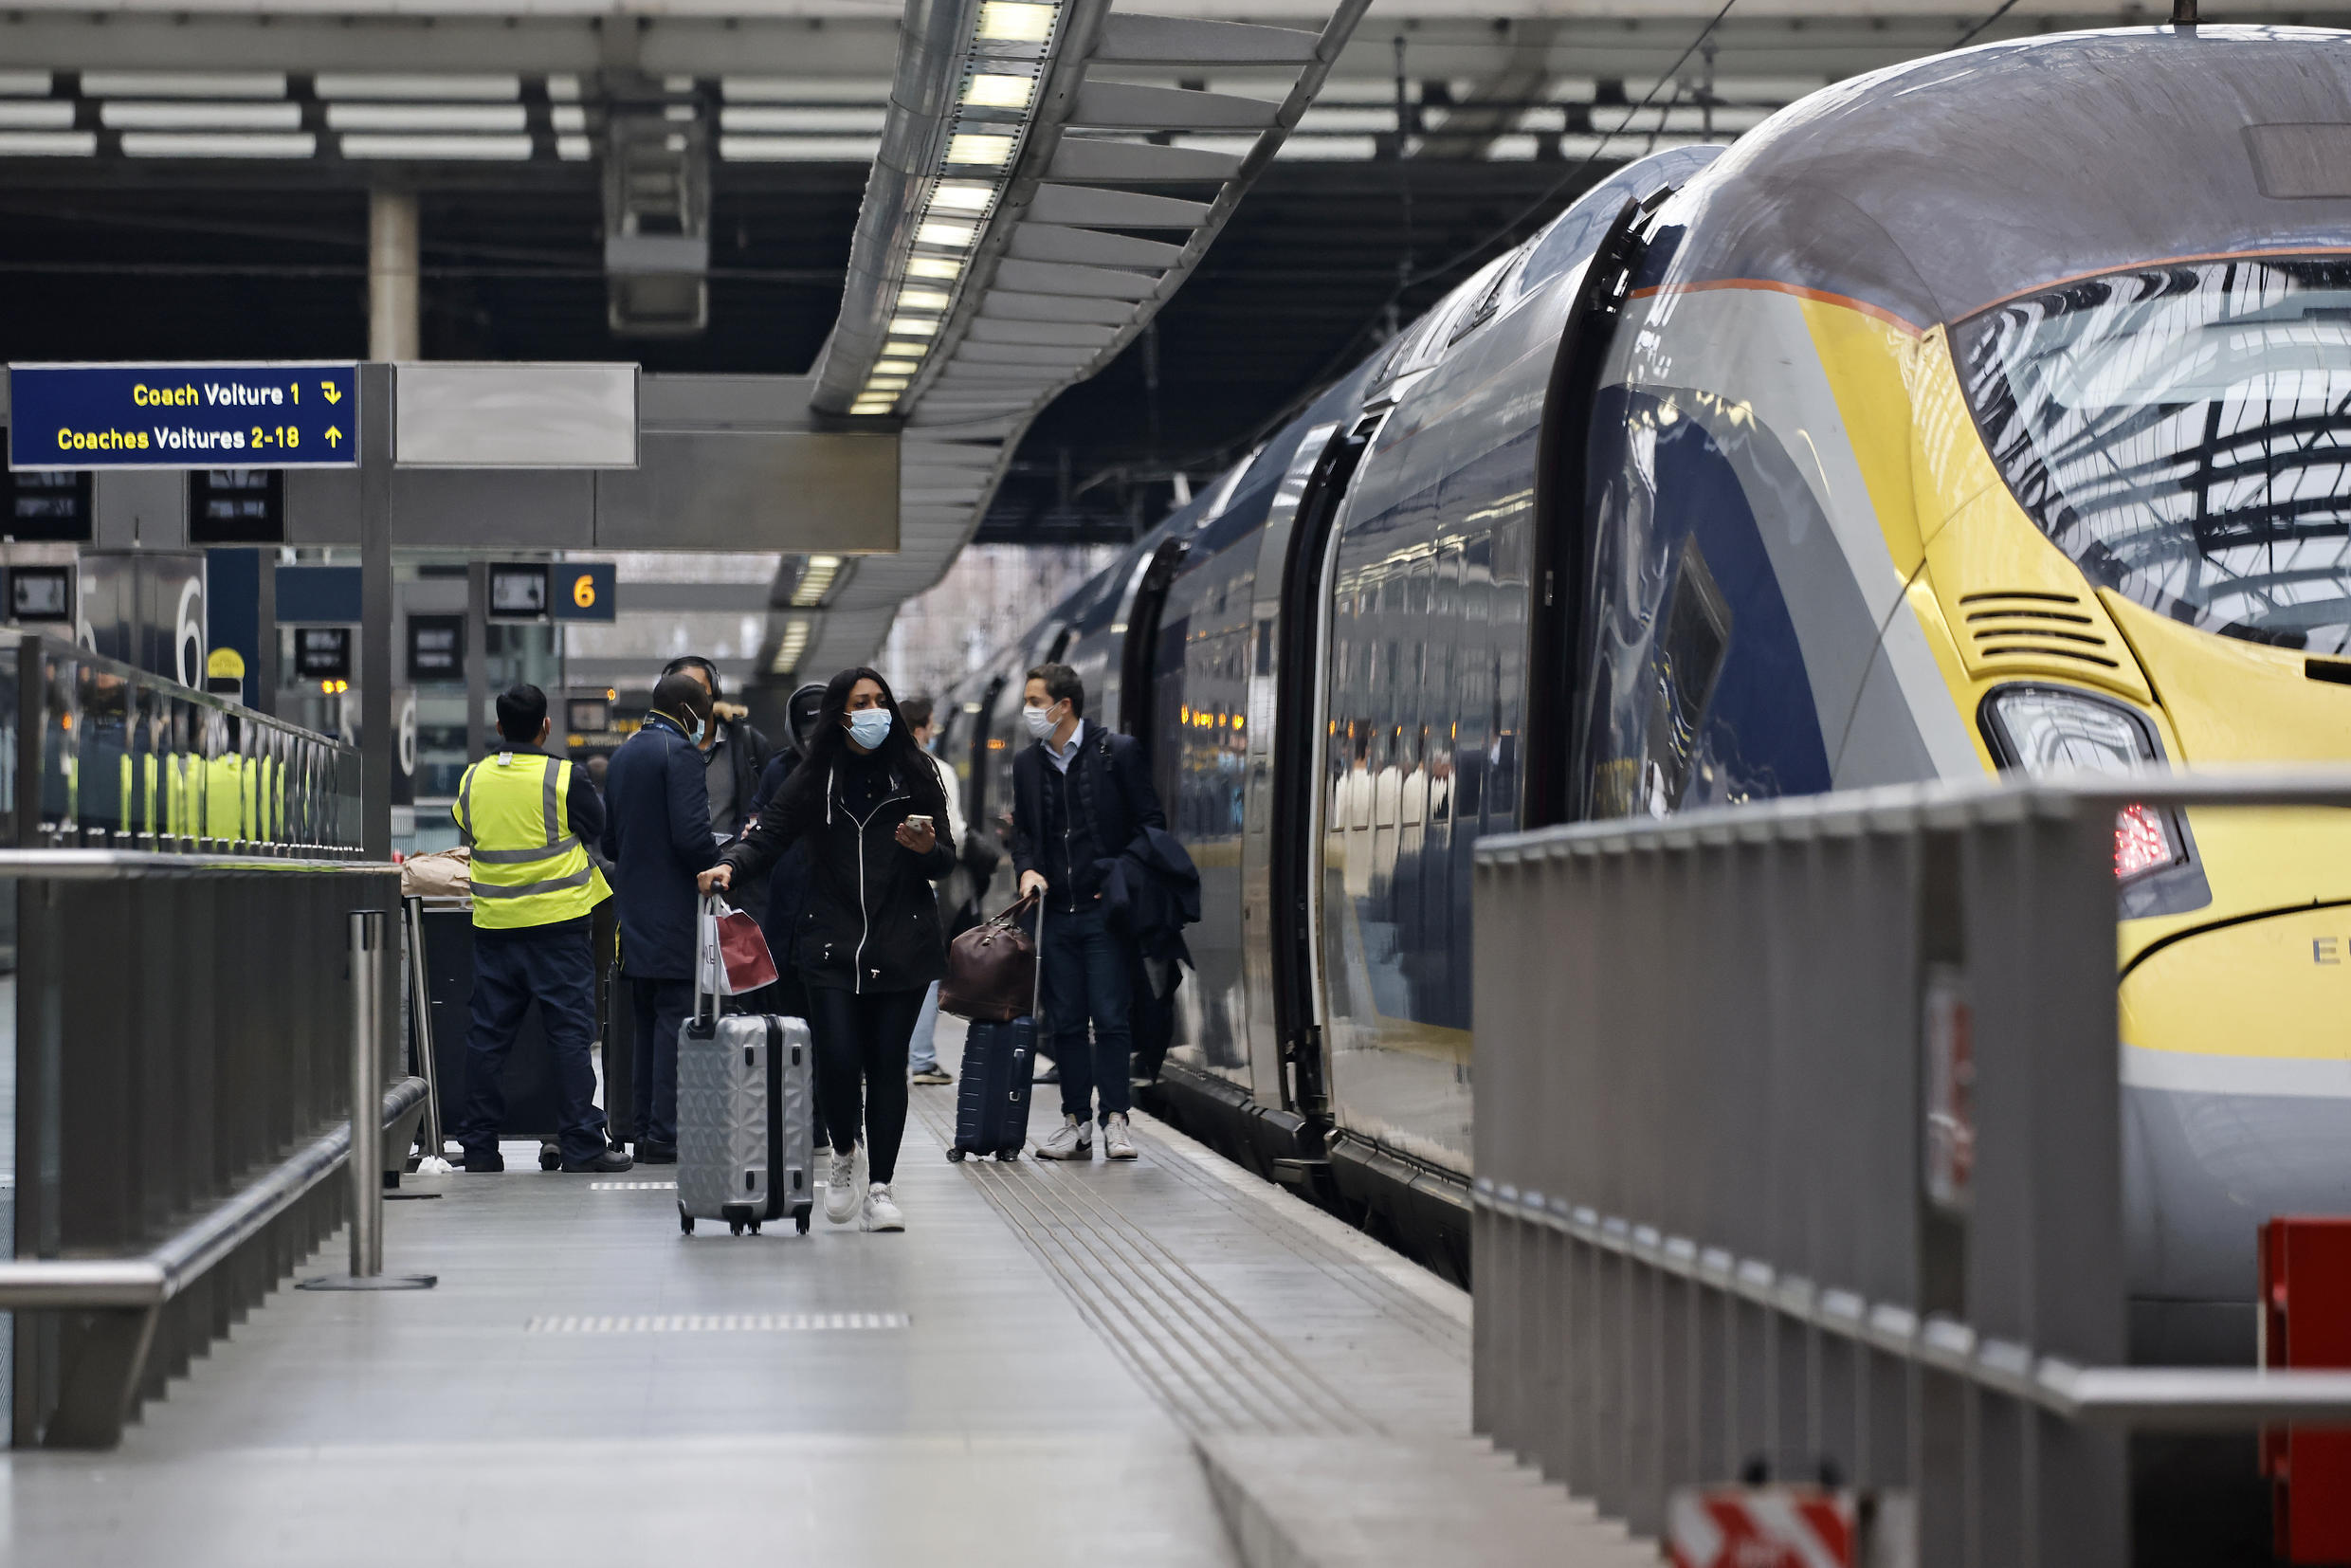 Passengers board a Eurostar train at St Pancras International station in London more than a week ago, in the runup to Britain withdrawing from the customs union.